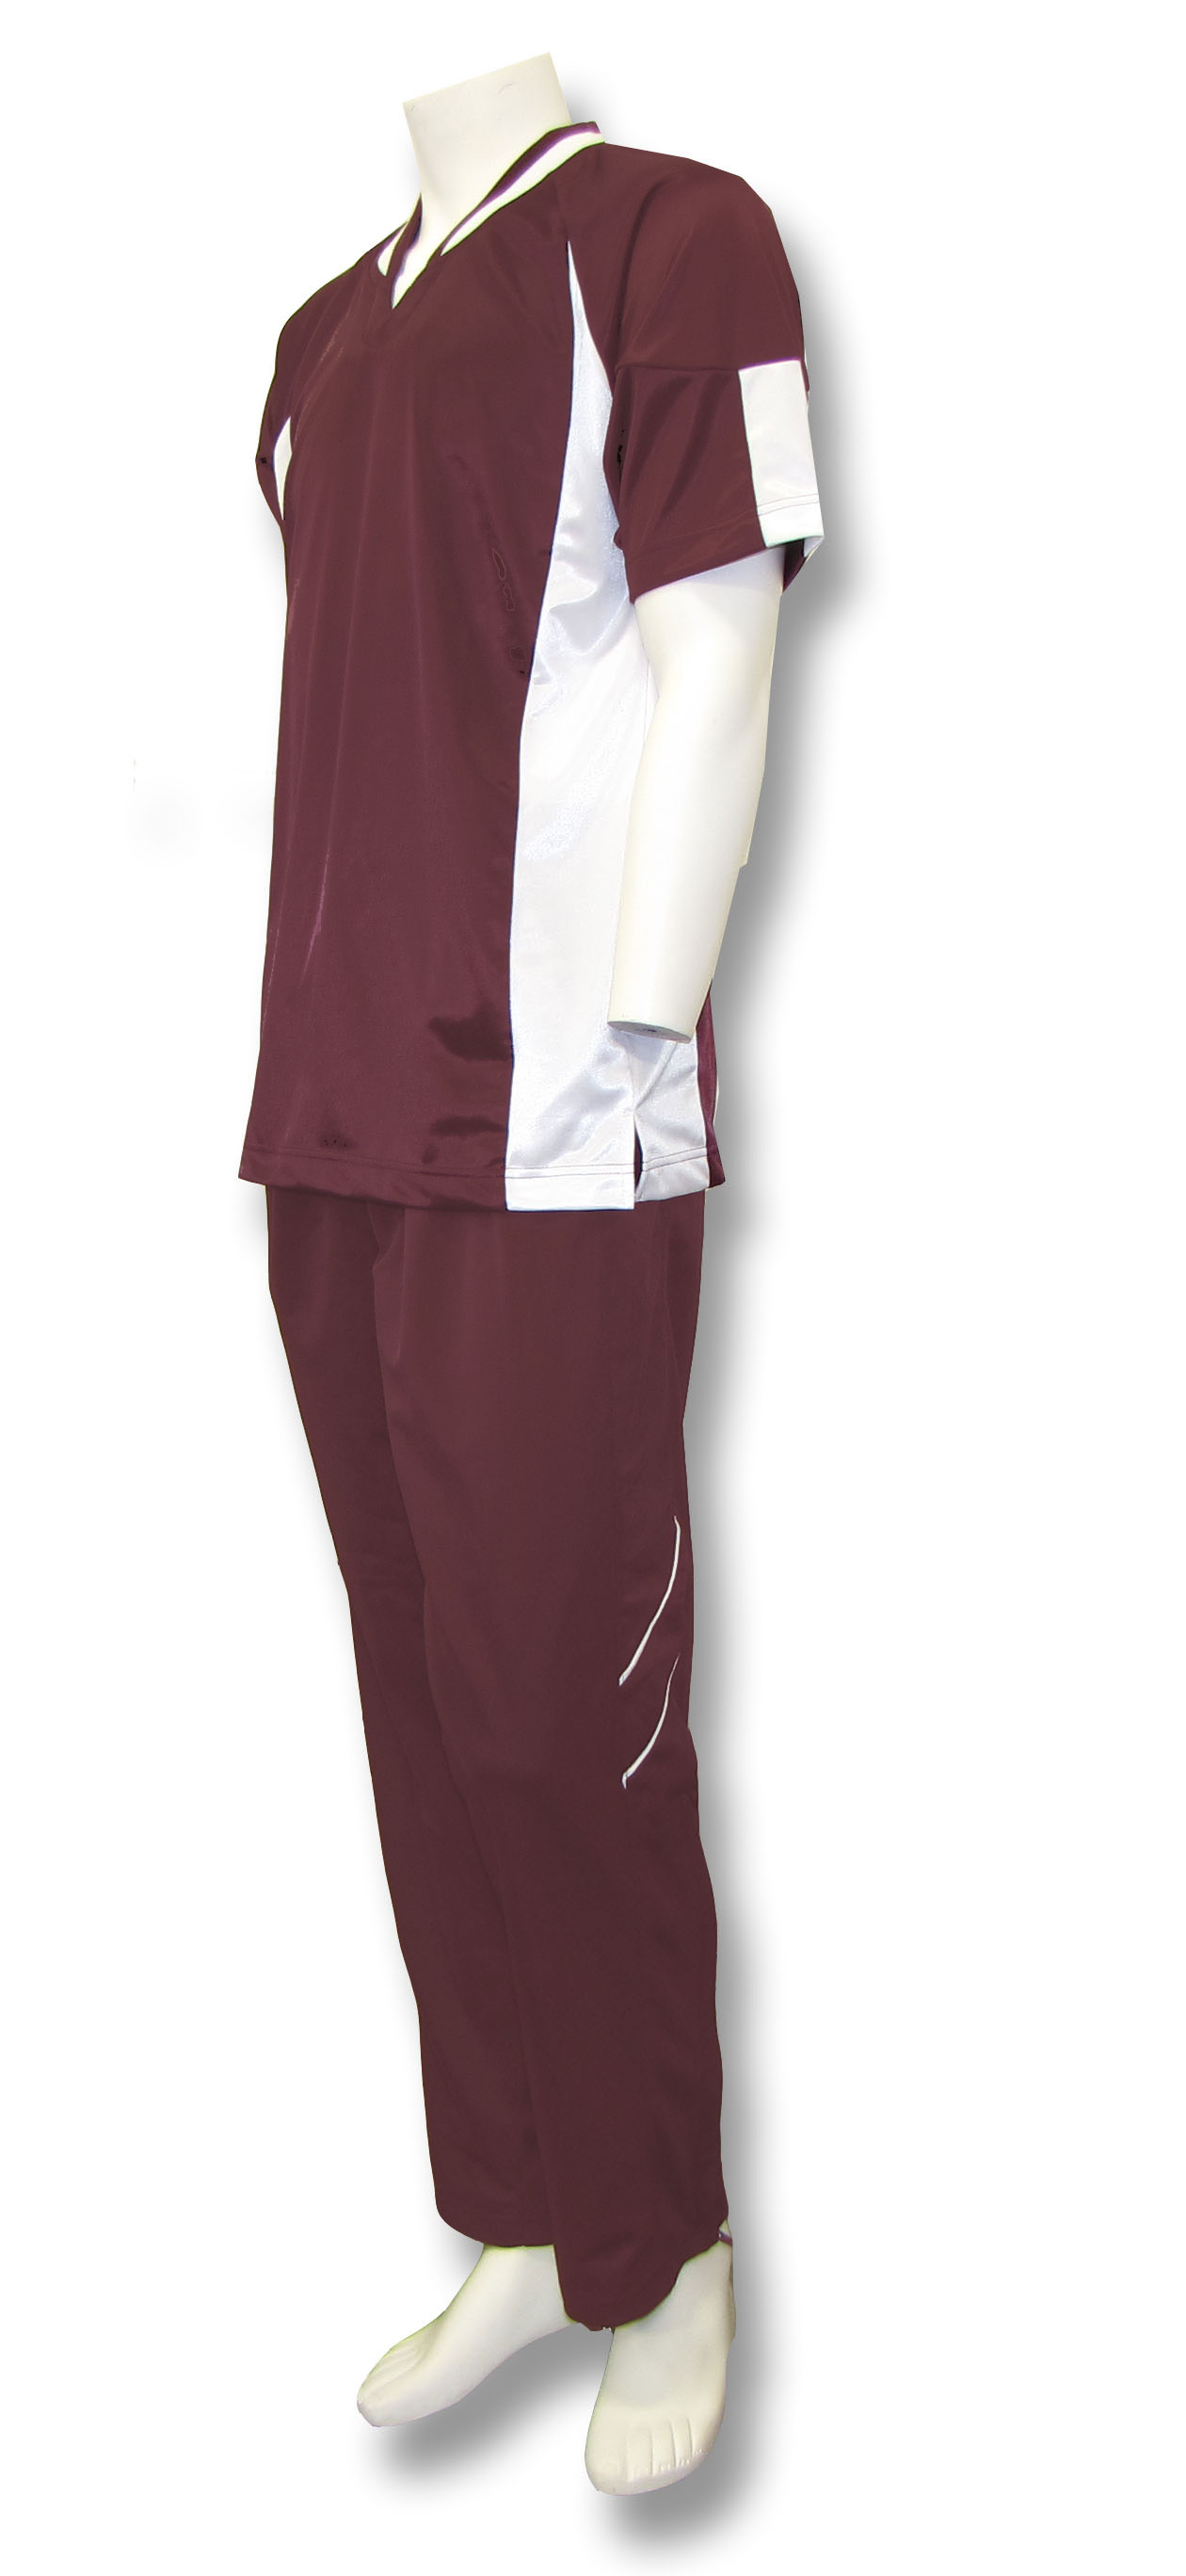 Elite basketball warm ups in maroon/white by Code Four Athletics